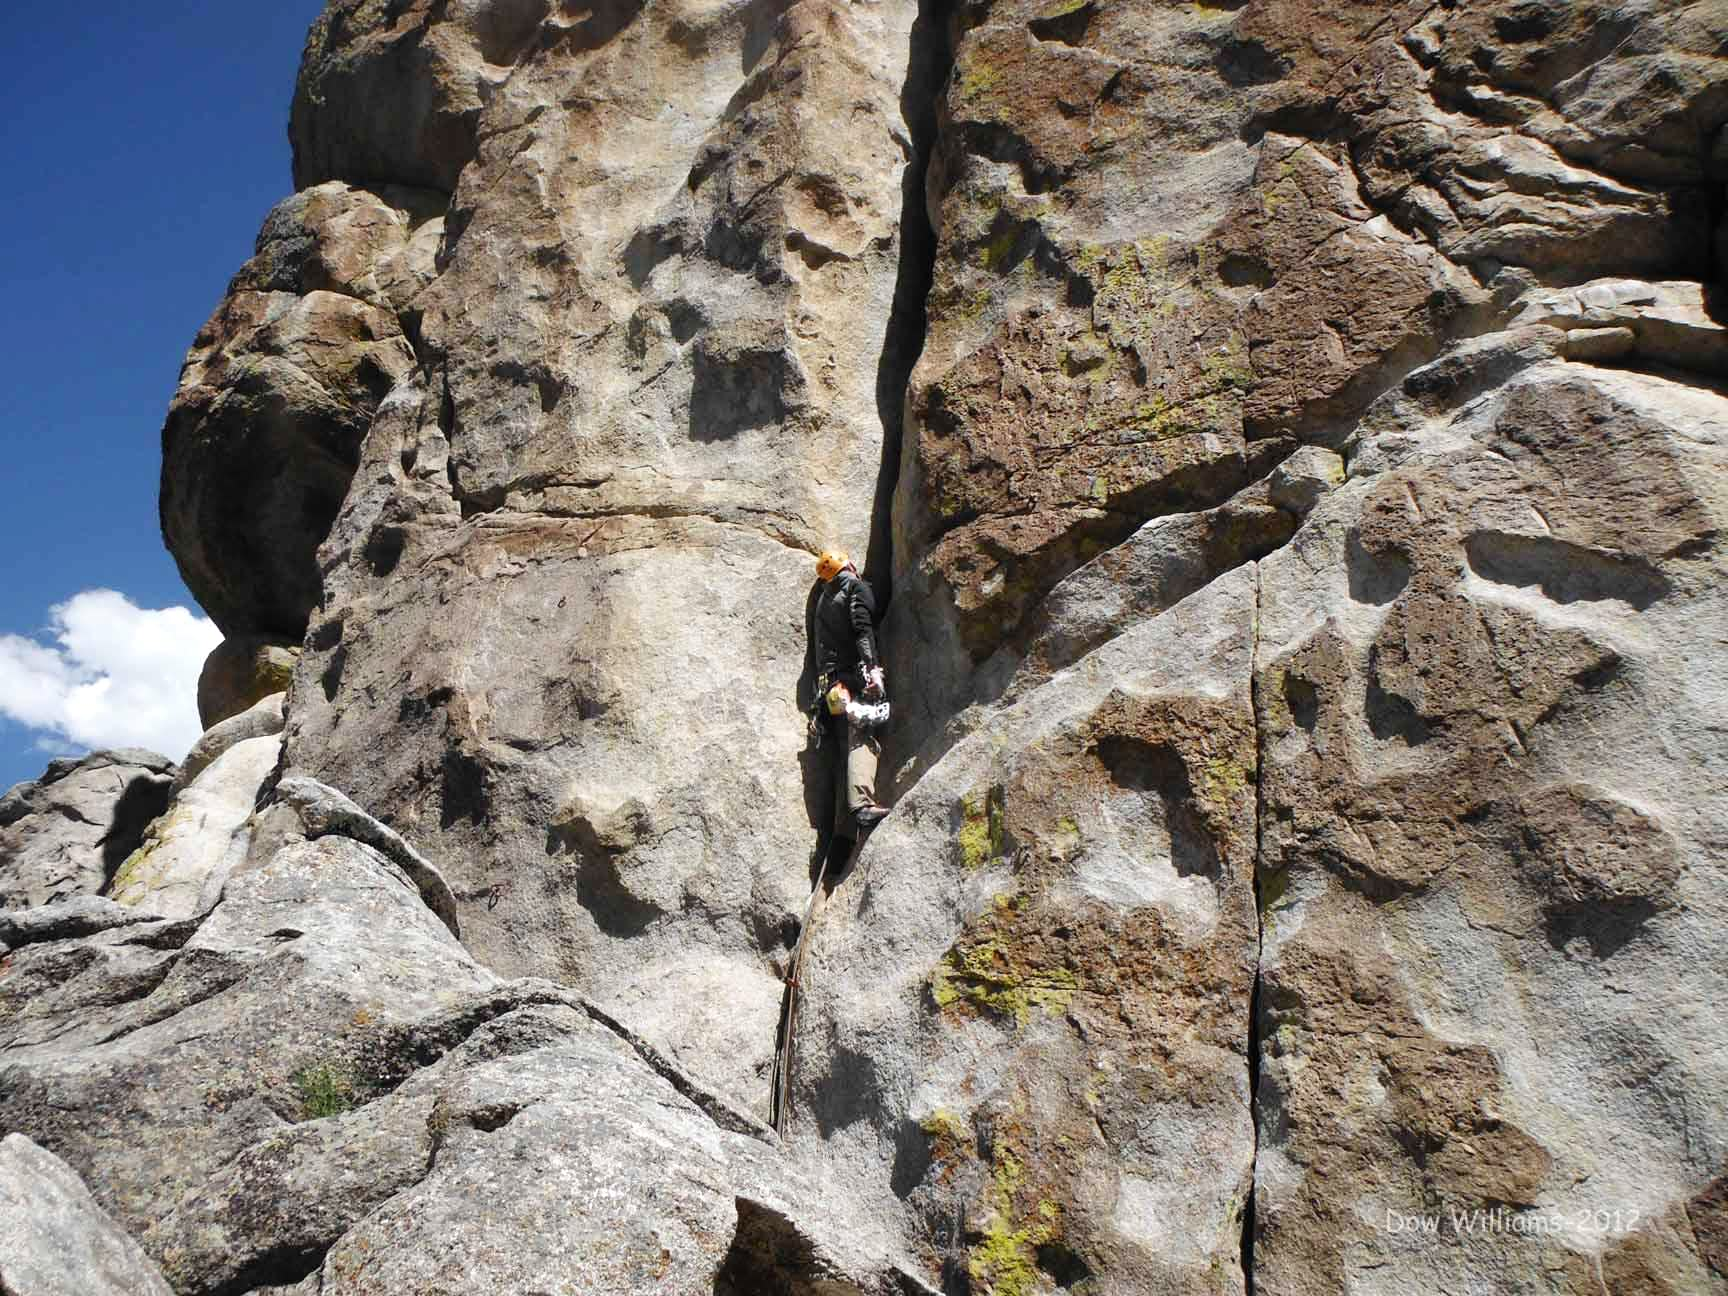 BLM Rock, West Corridor, 5.9-5.11b